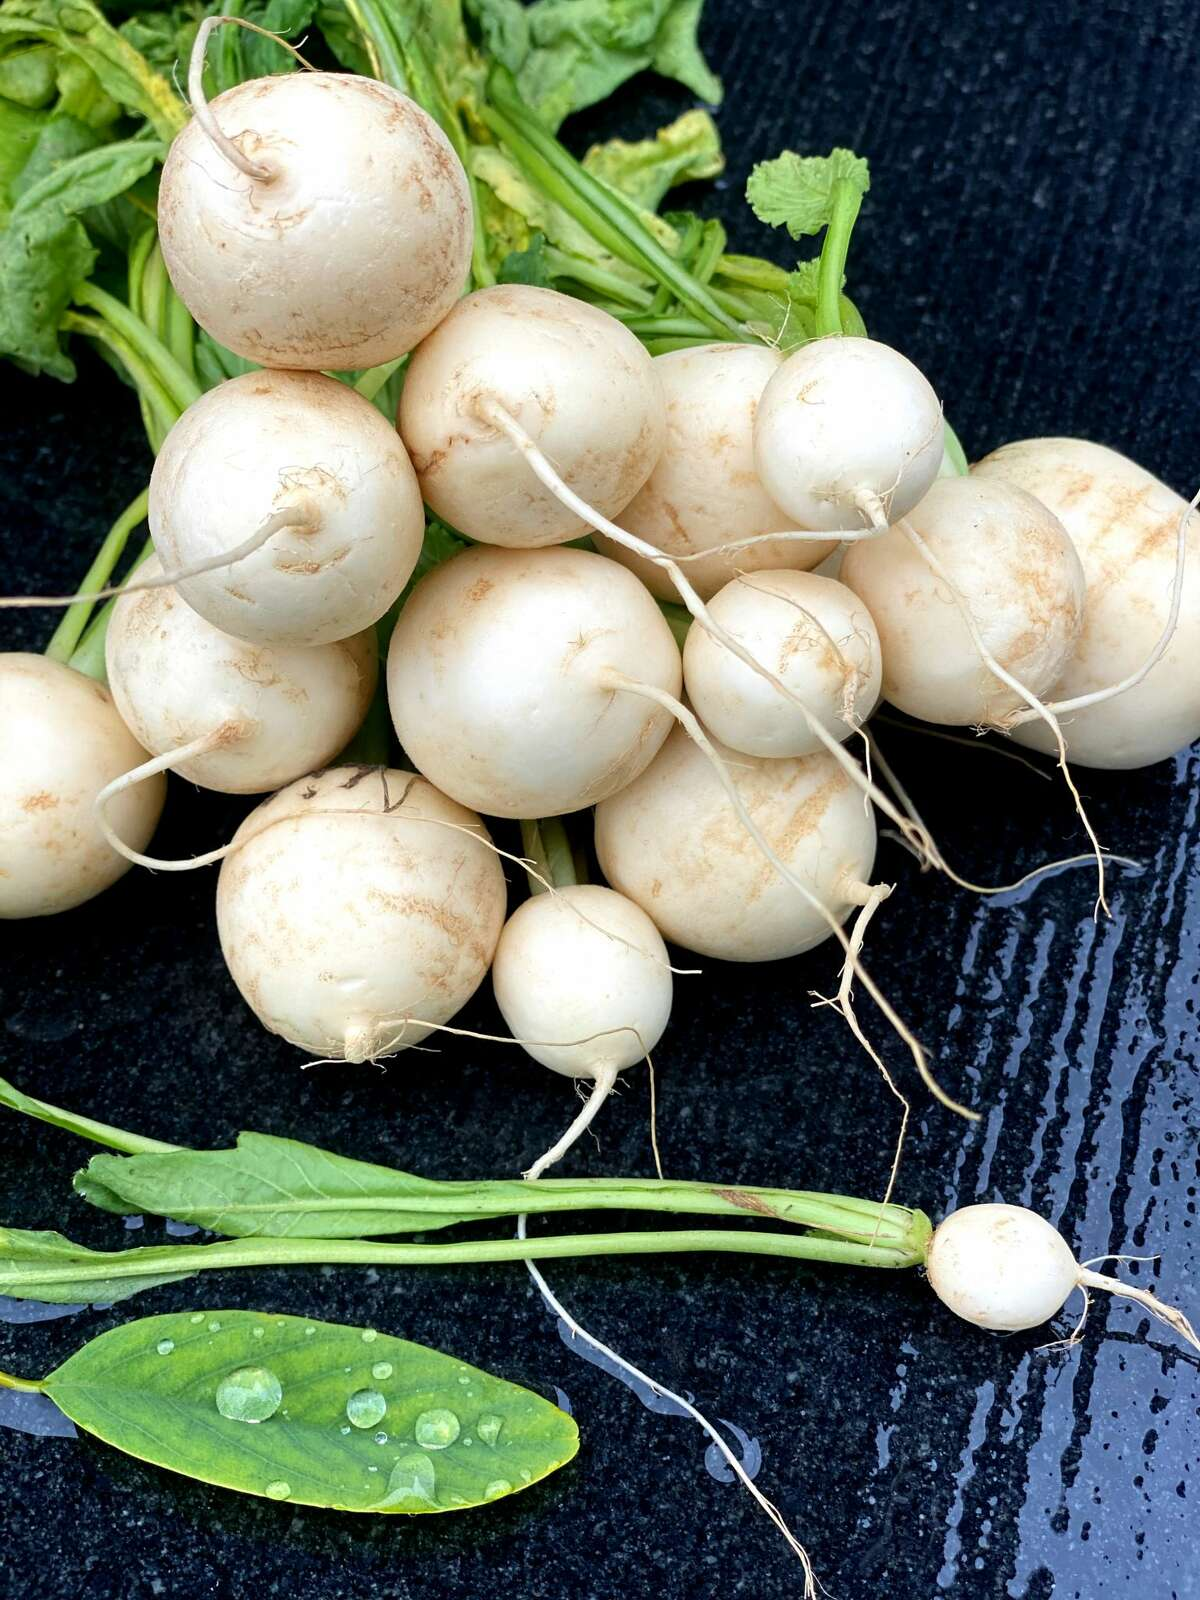 Developed in Japan in the 1950s in response to food shortages after World War II, Hakurei turnips have a delicate, crunchy, fruity taste, making them just as versatile raw or cooked. (Susie Davidson Powell/for the Times Union)